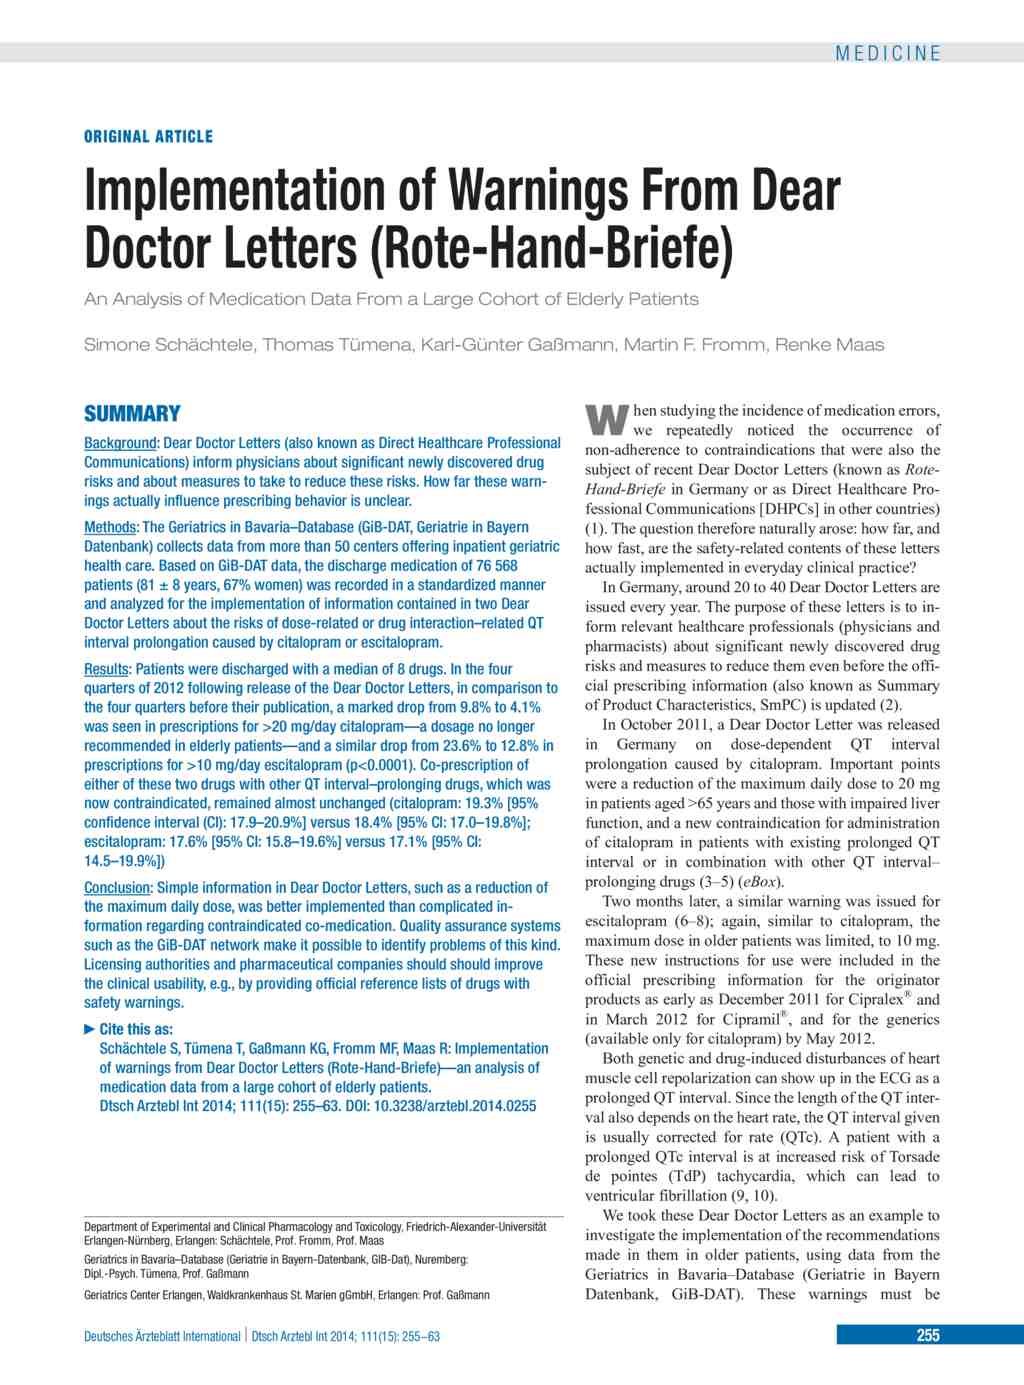 Implementation Of Warnings From Dear Doctor Letters Rote Hand